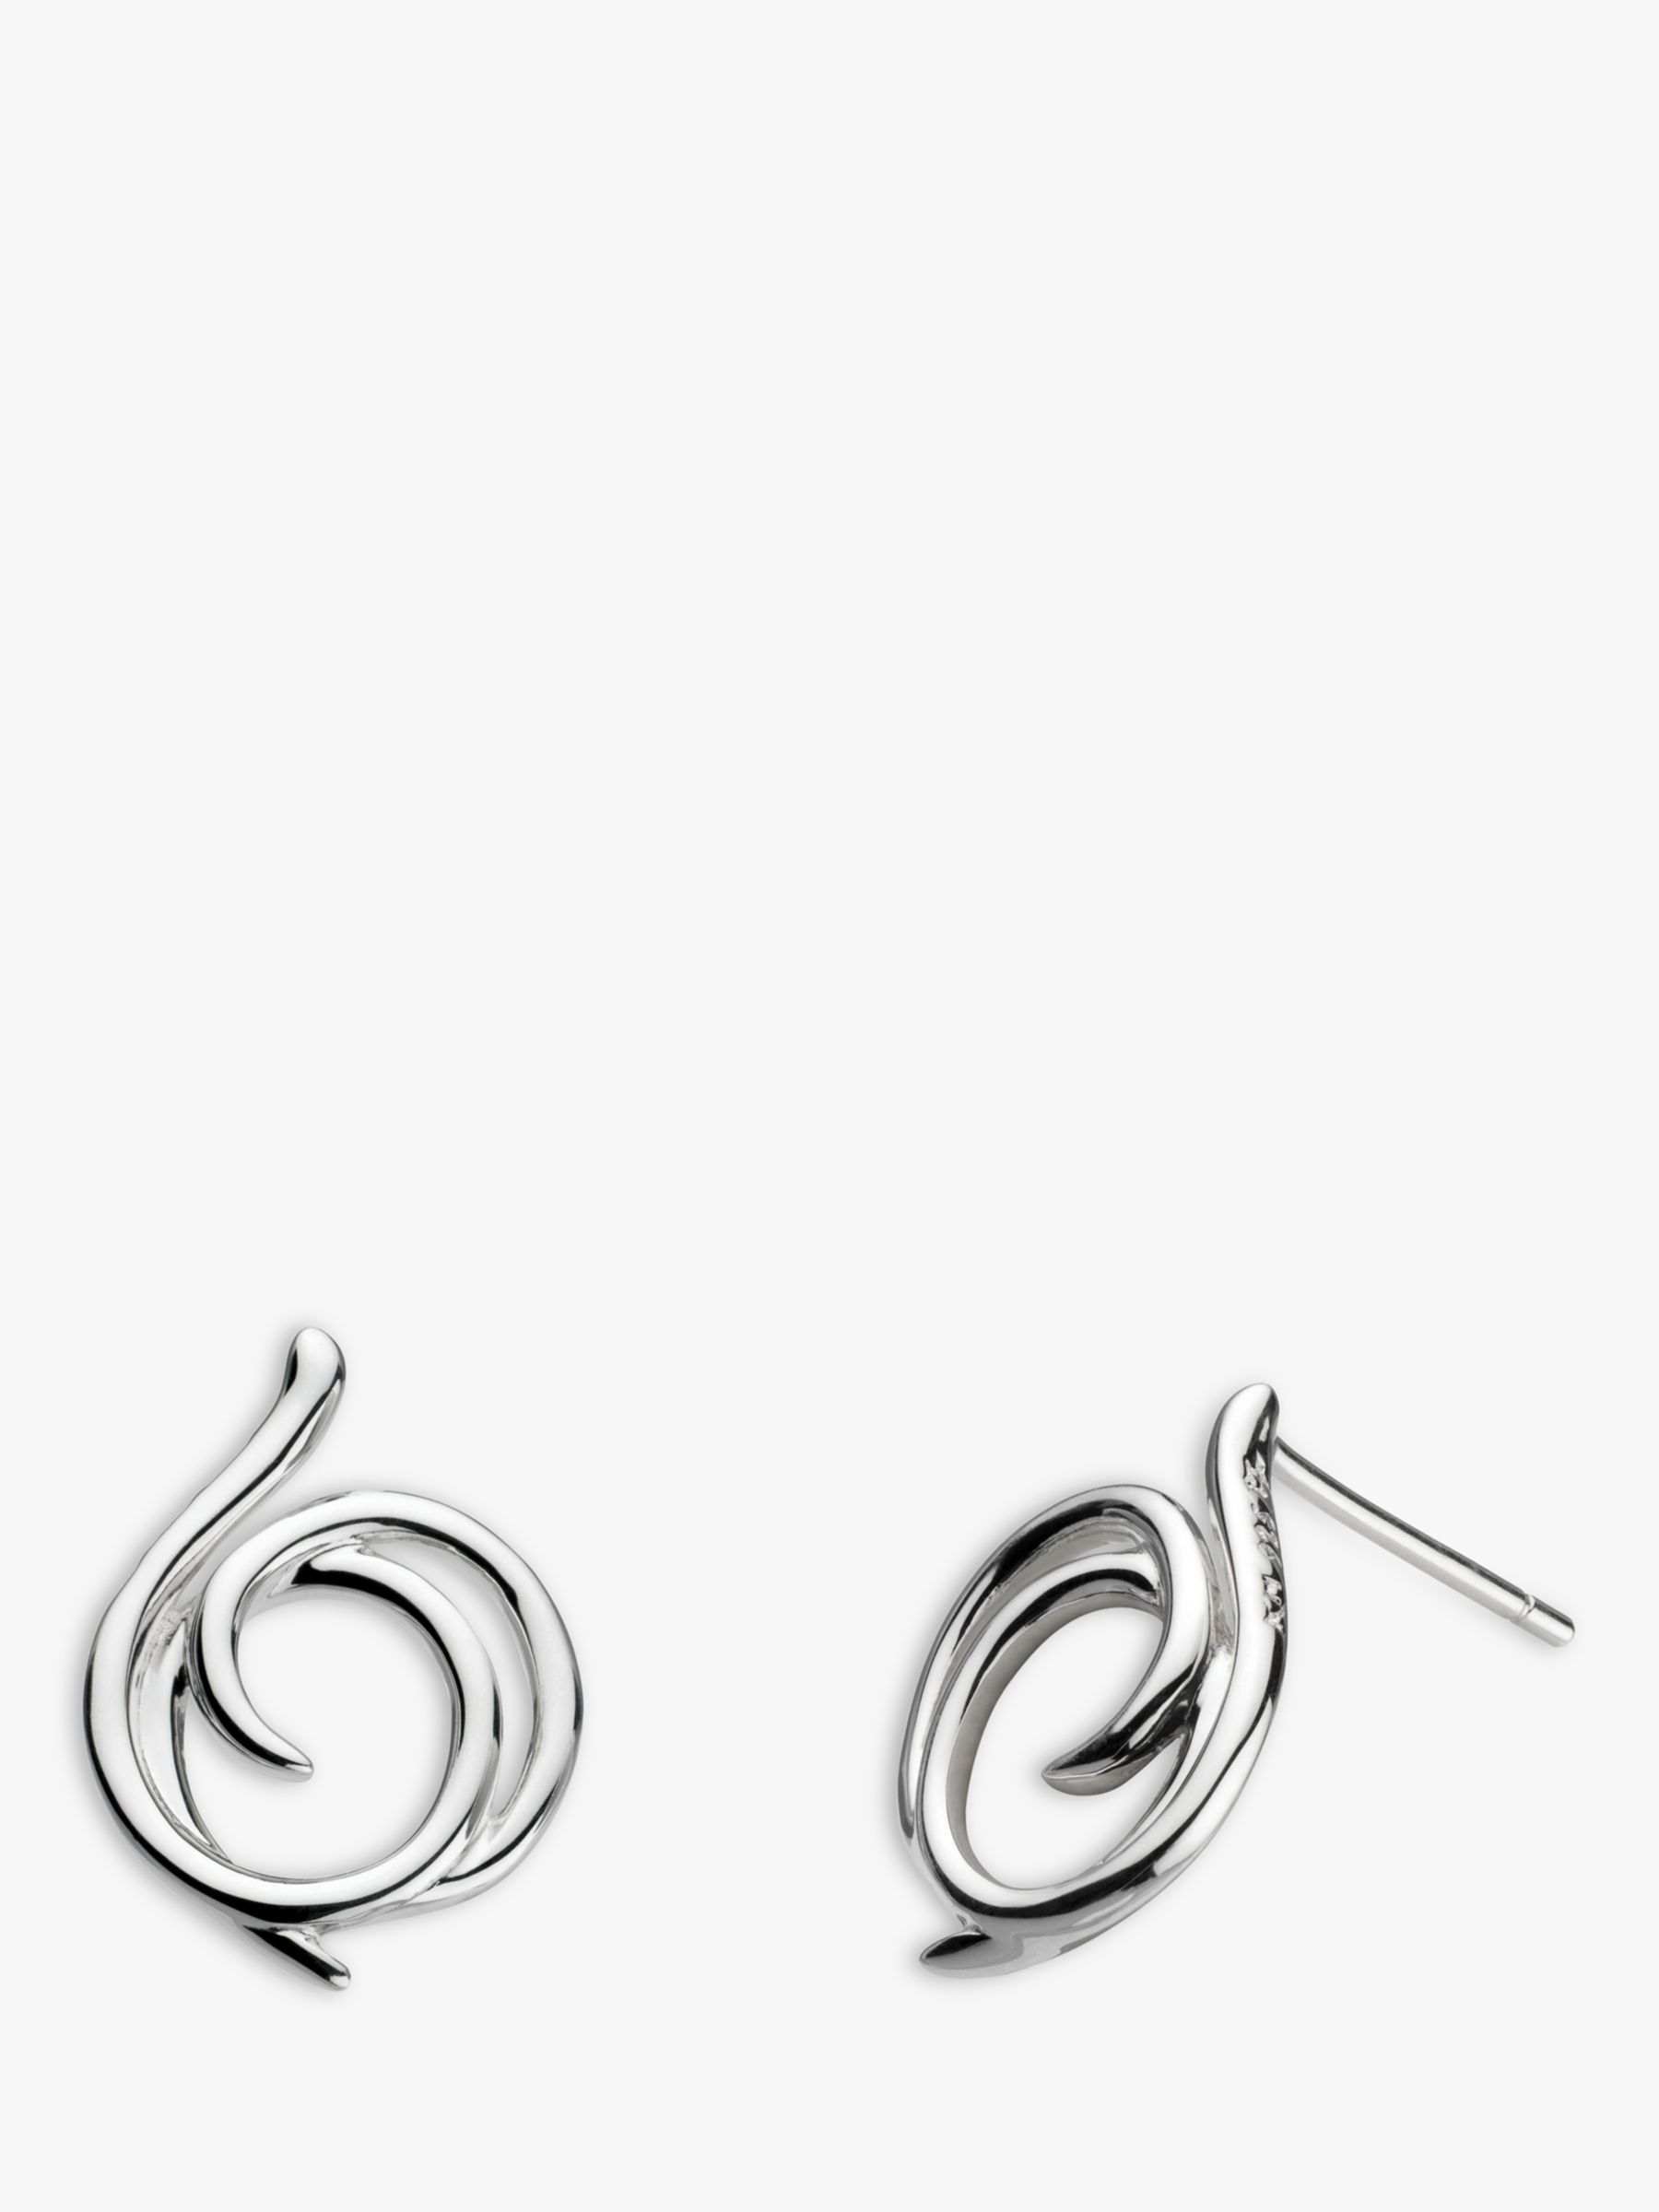 Kit Heath Kit Heath Sterling Silver Large Helix Wrap Stud Earrings, Silver